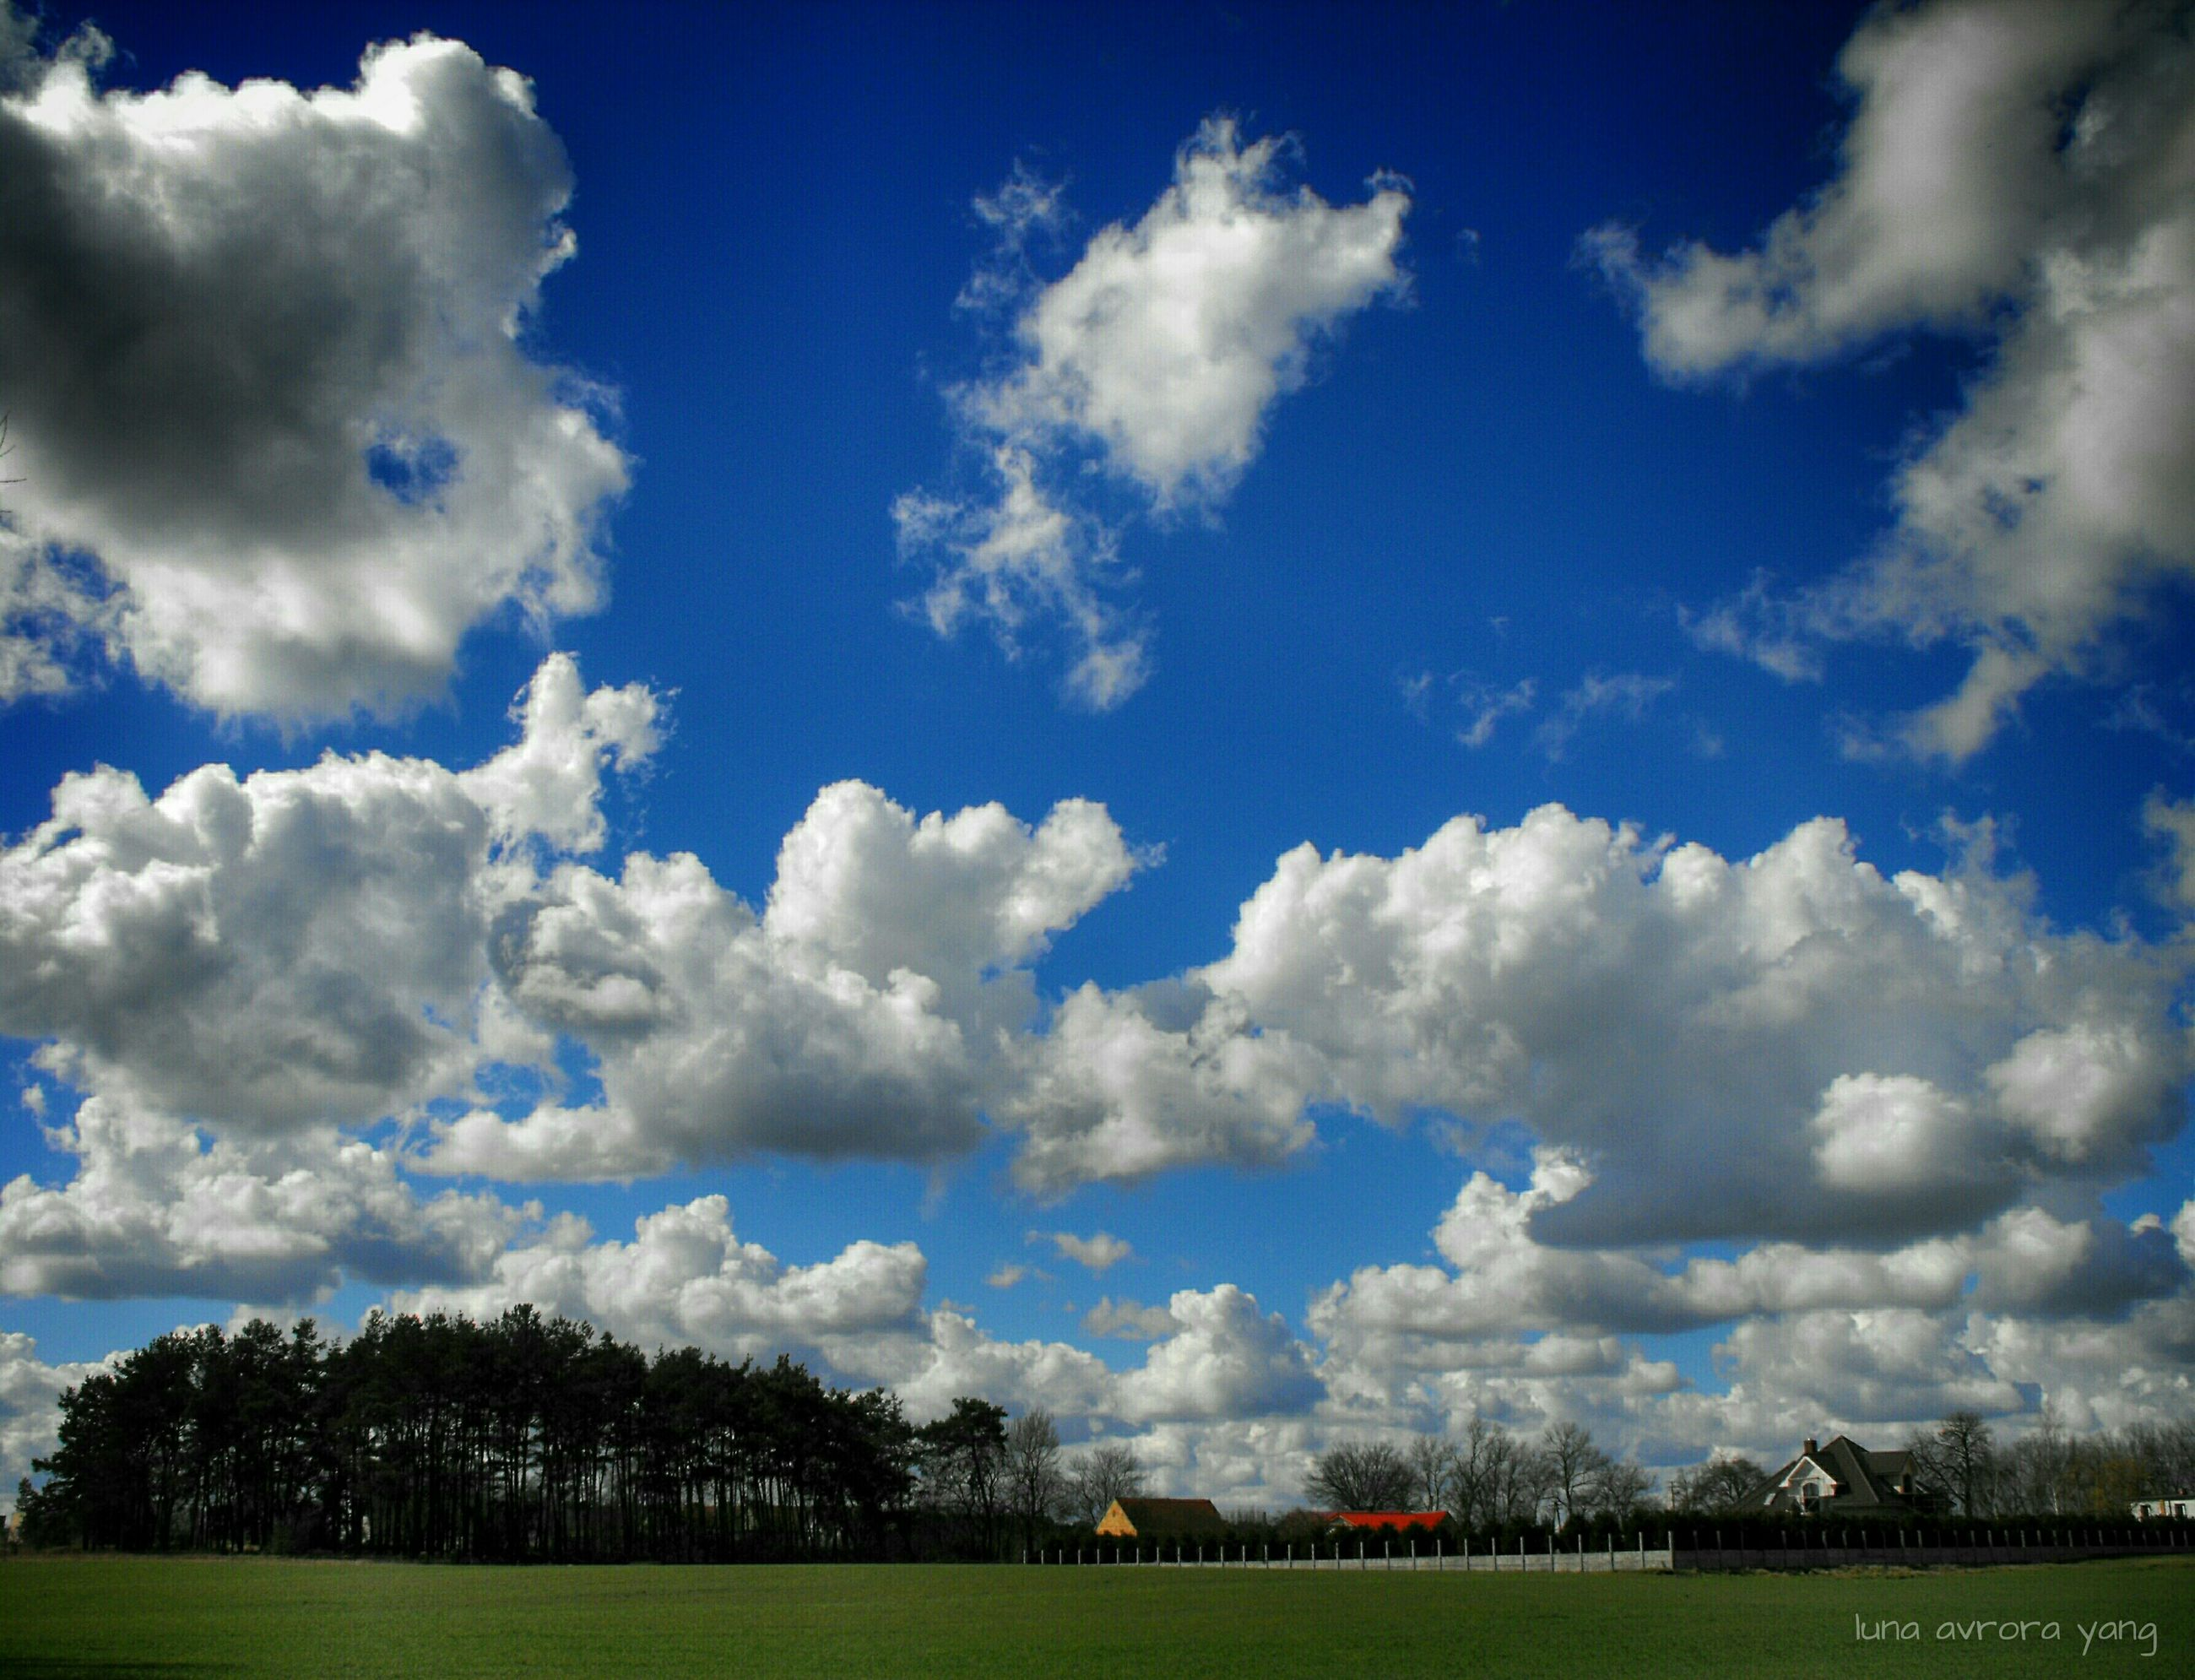 grass, sky, cloud - sky, field, tree, blue, cloud, landscape, tranquil scene, tranquility, grassy, cloudy, beauty in nature, nature, green color, scenics, growth, day, lawn, outdoors